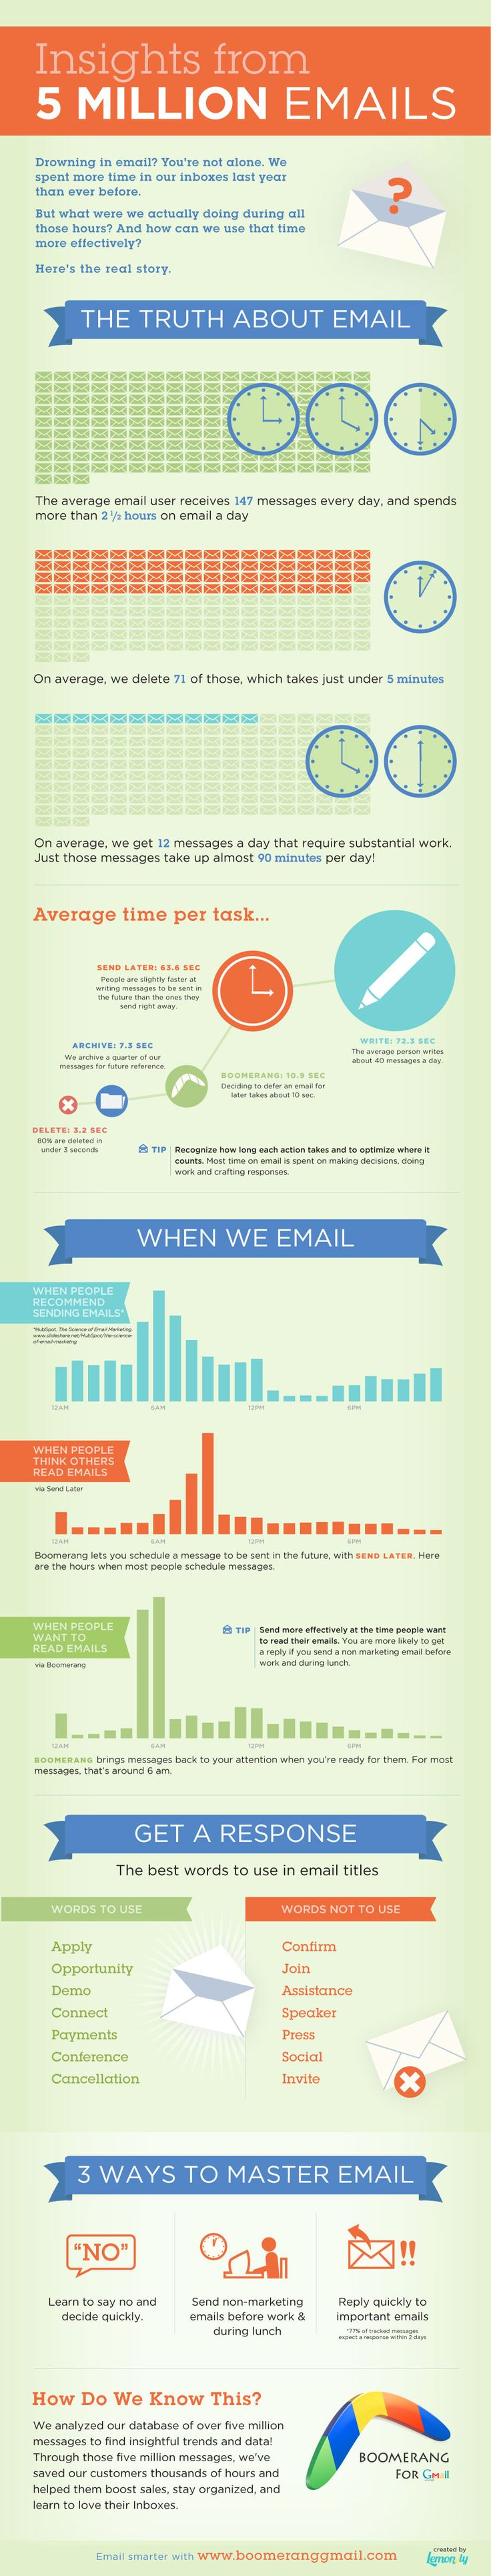 Avoid these words if you want an email response